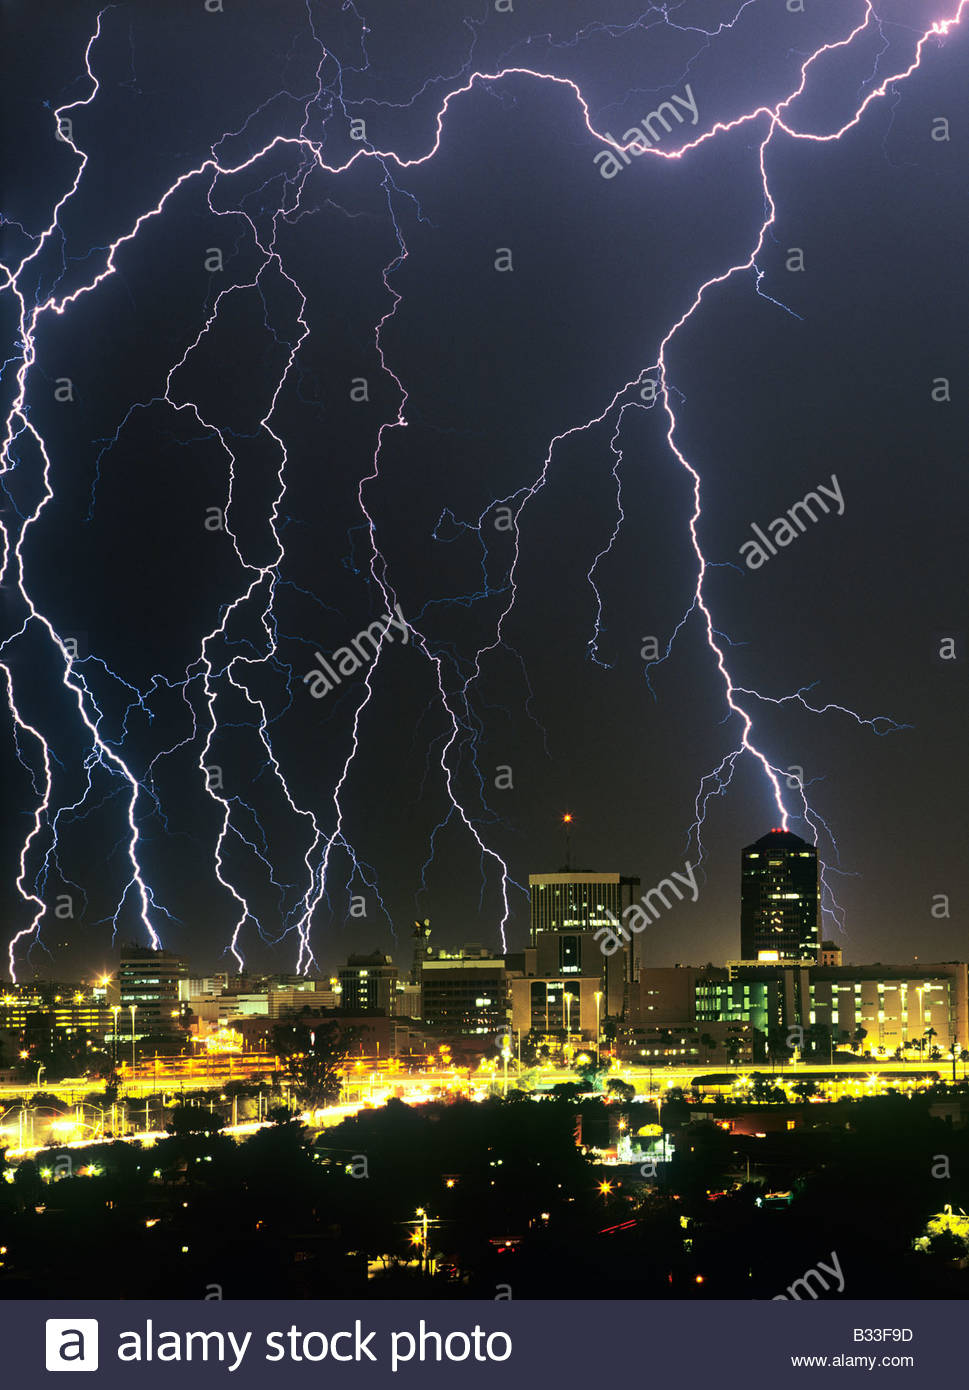 Lightning Storm, Thunderstorm Over Downtown Tucson Arizona USA With Large  Lighting Bolts In The City.